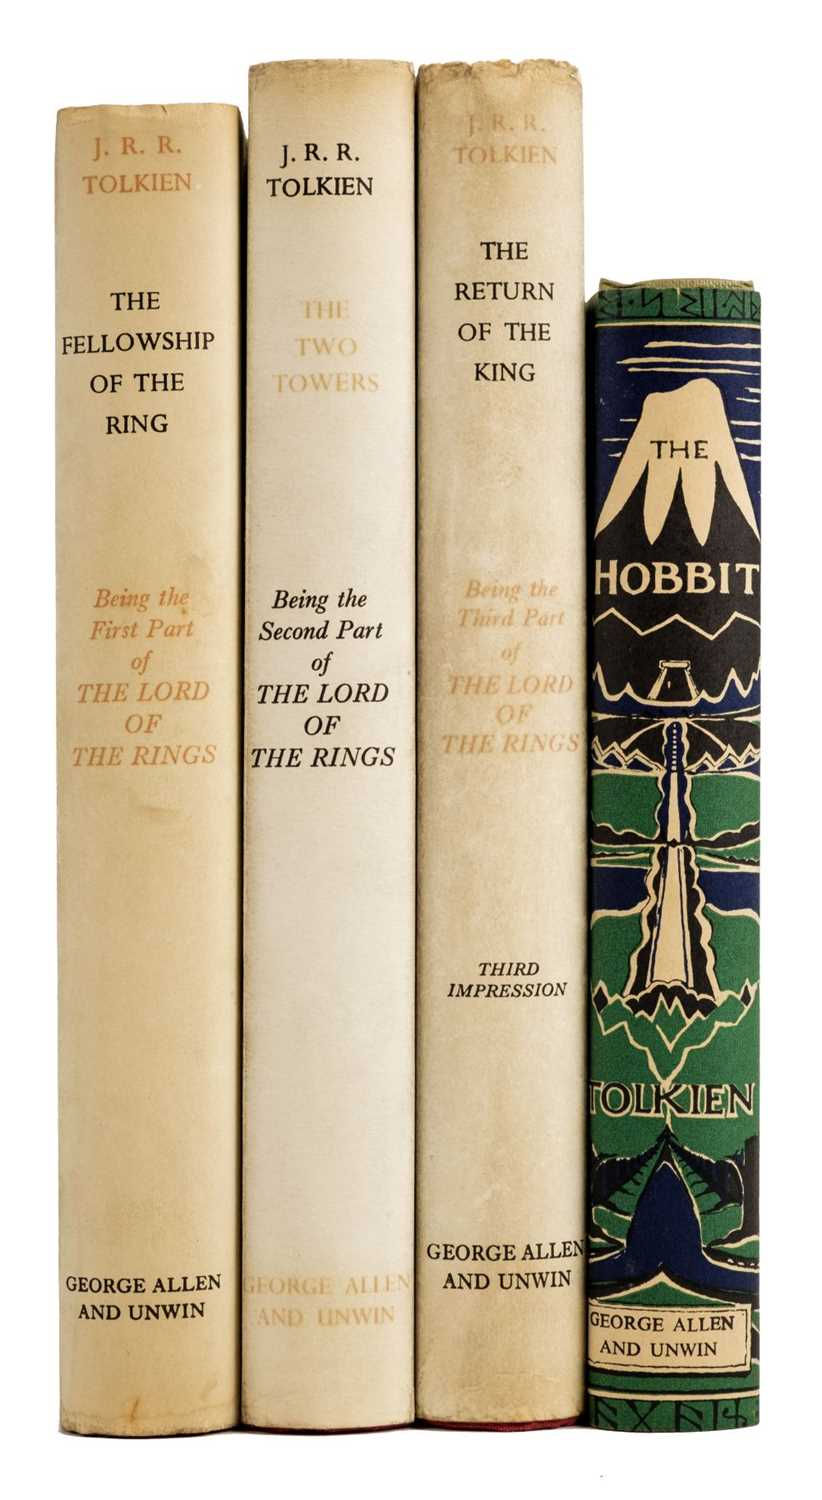 Lot 367-Tolkien (J.R.R.) The Lord of the Rings, 3 volumes, 1957-59